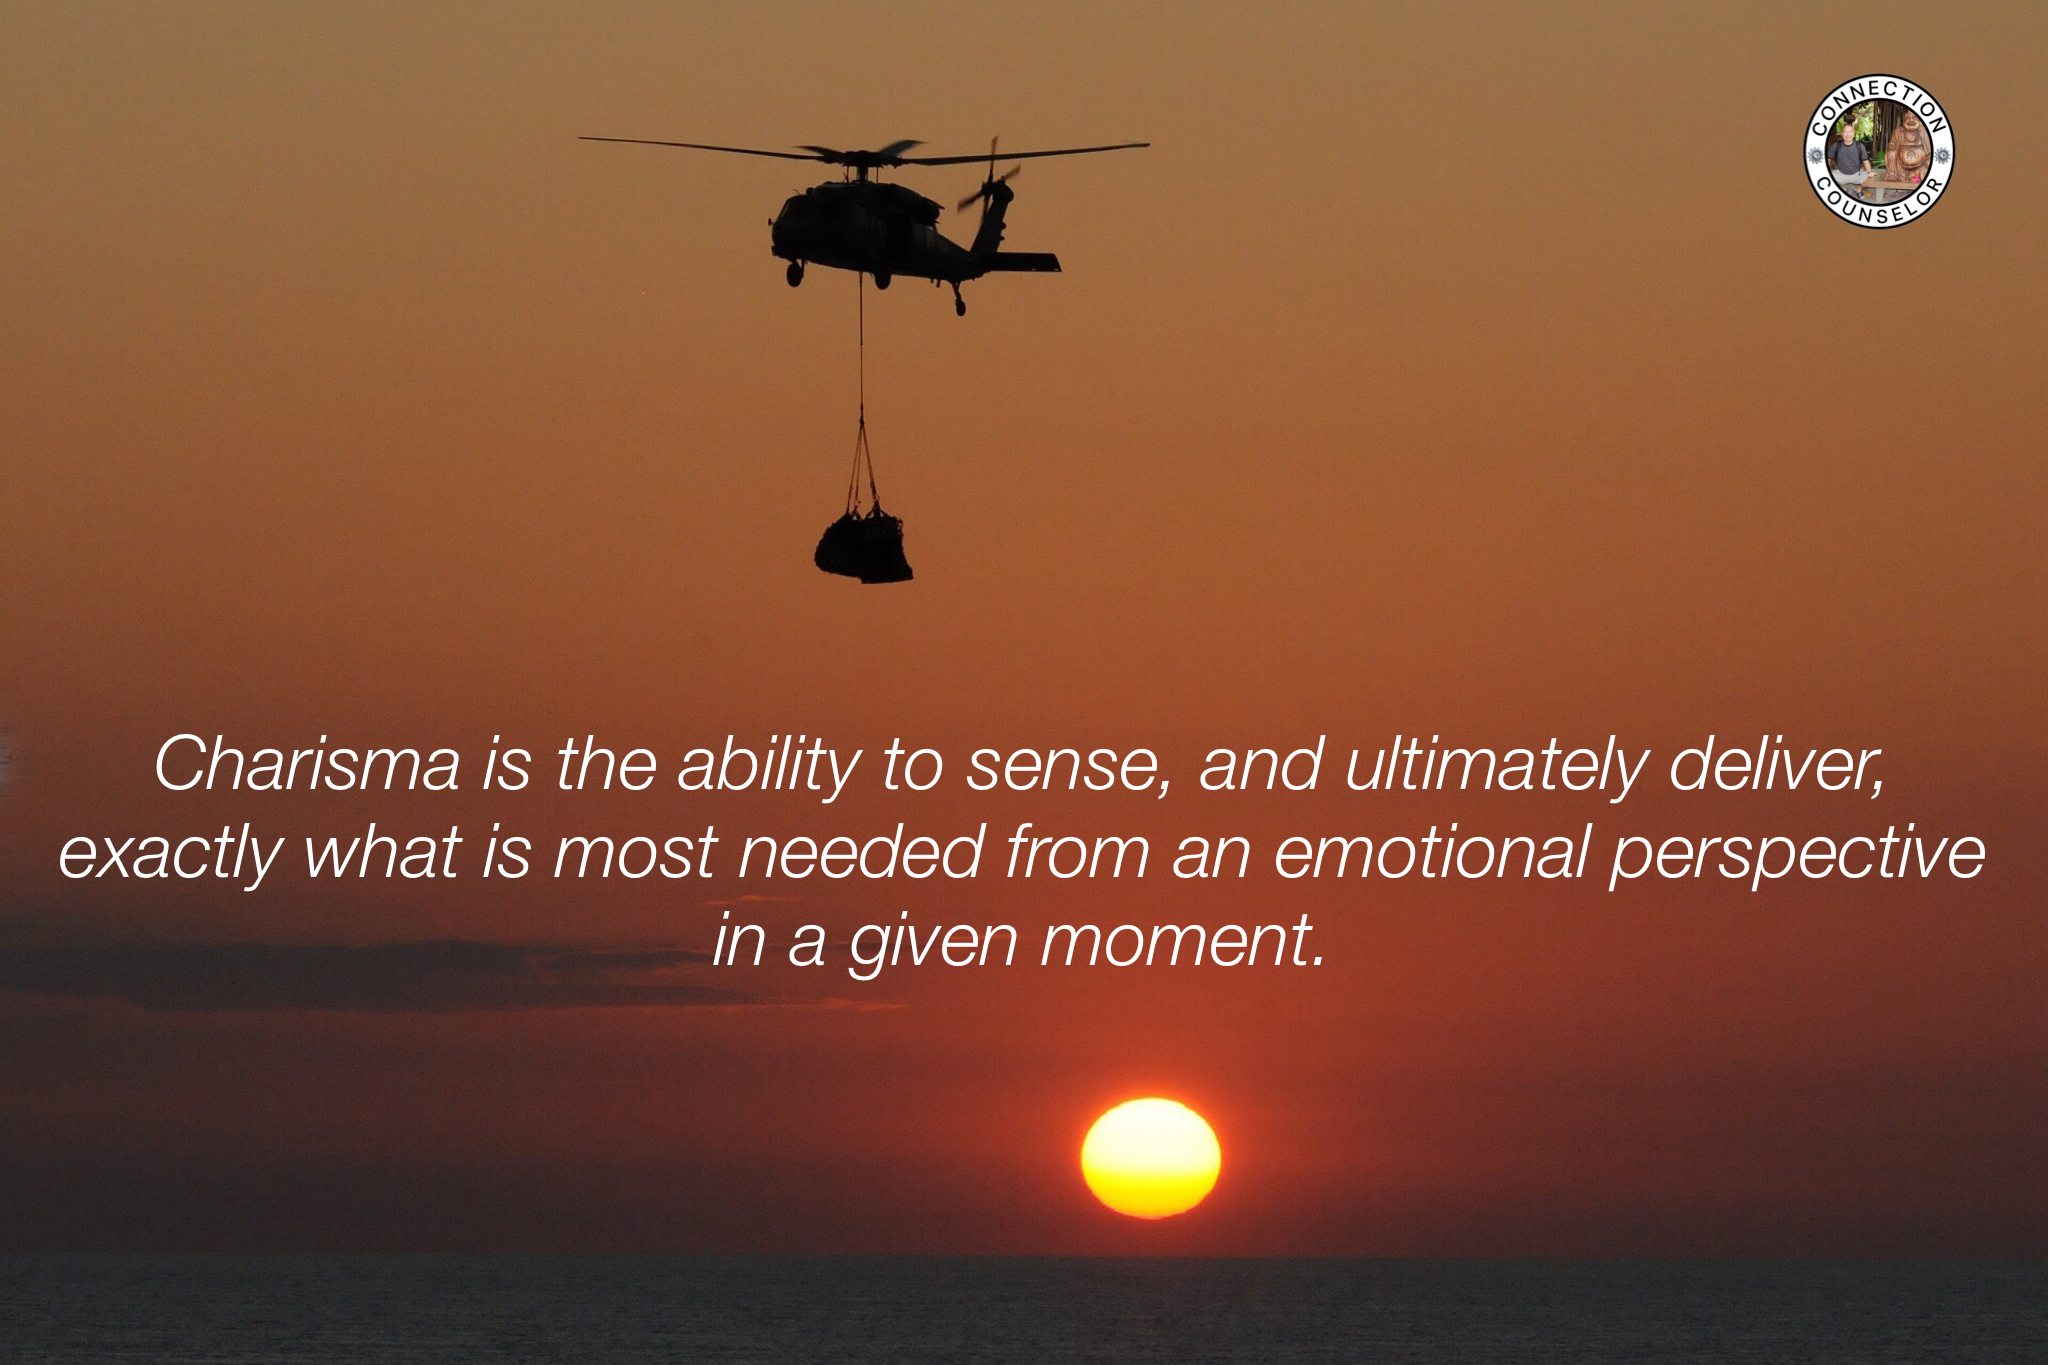 Charisma helicopter photo copy.PNG